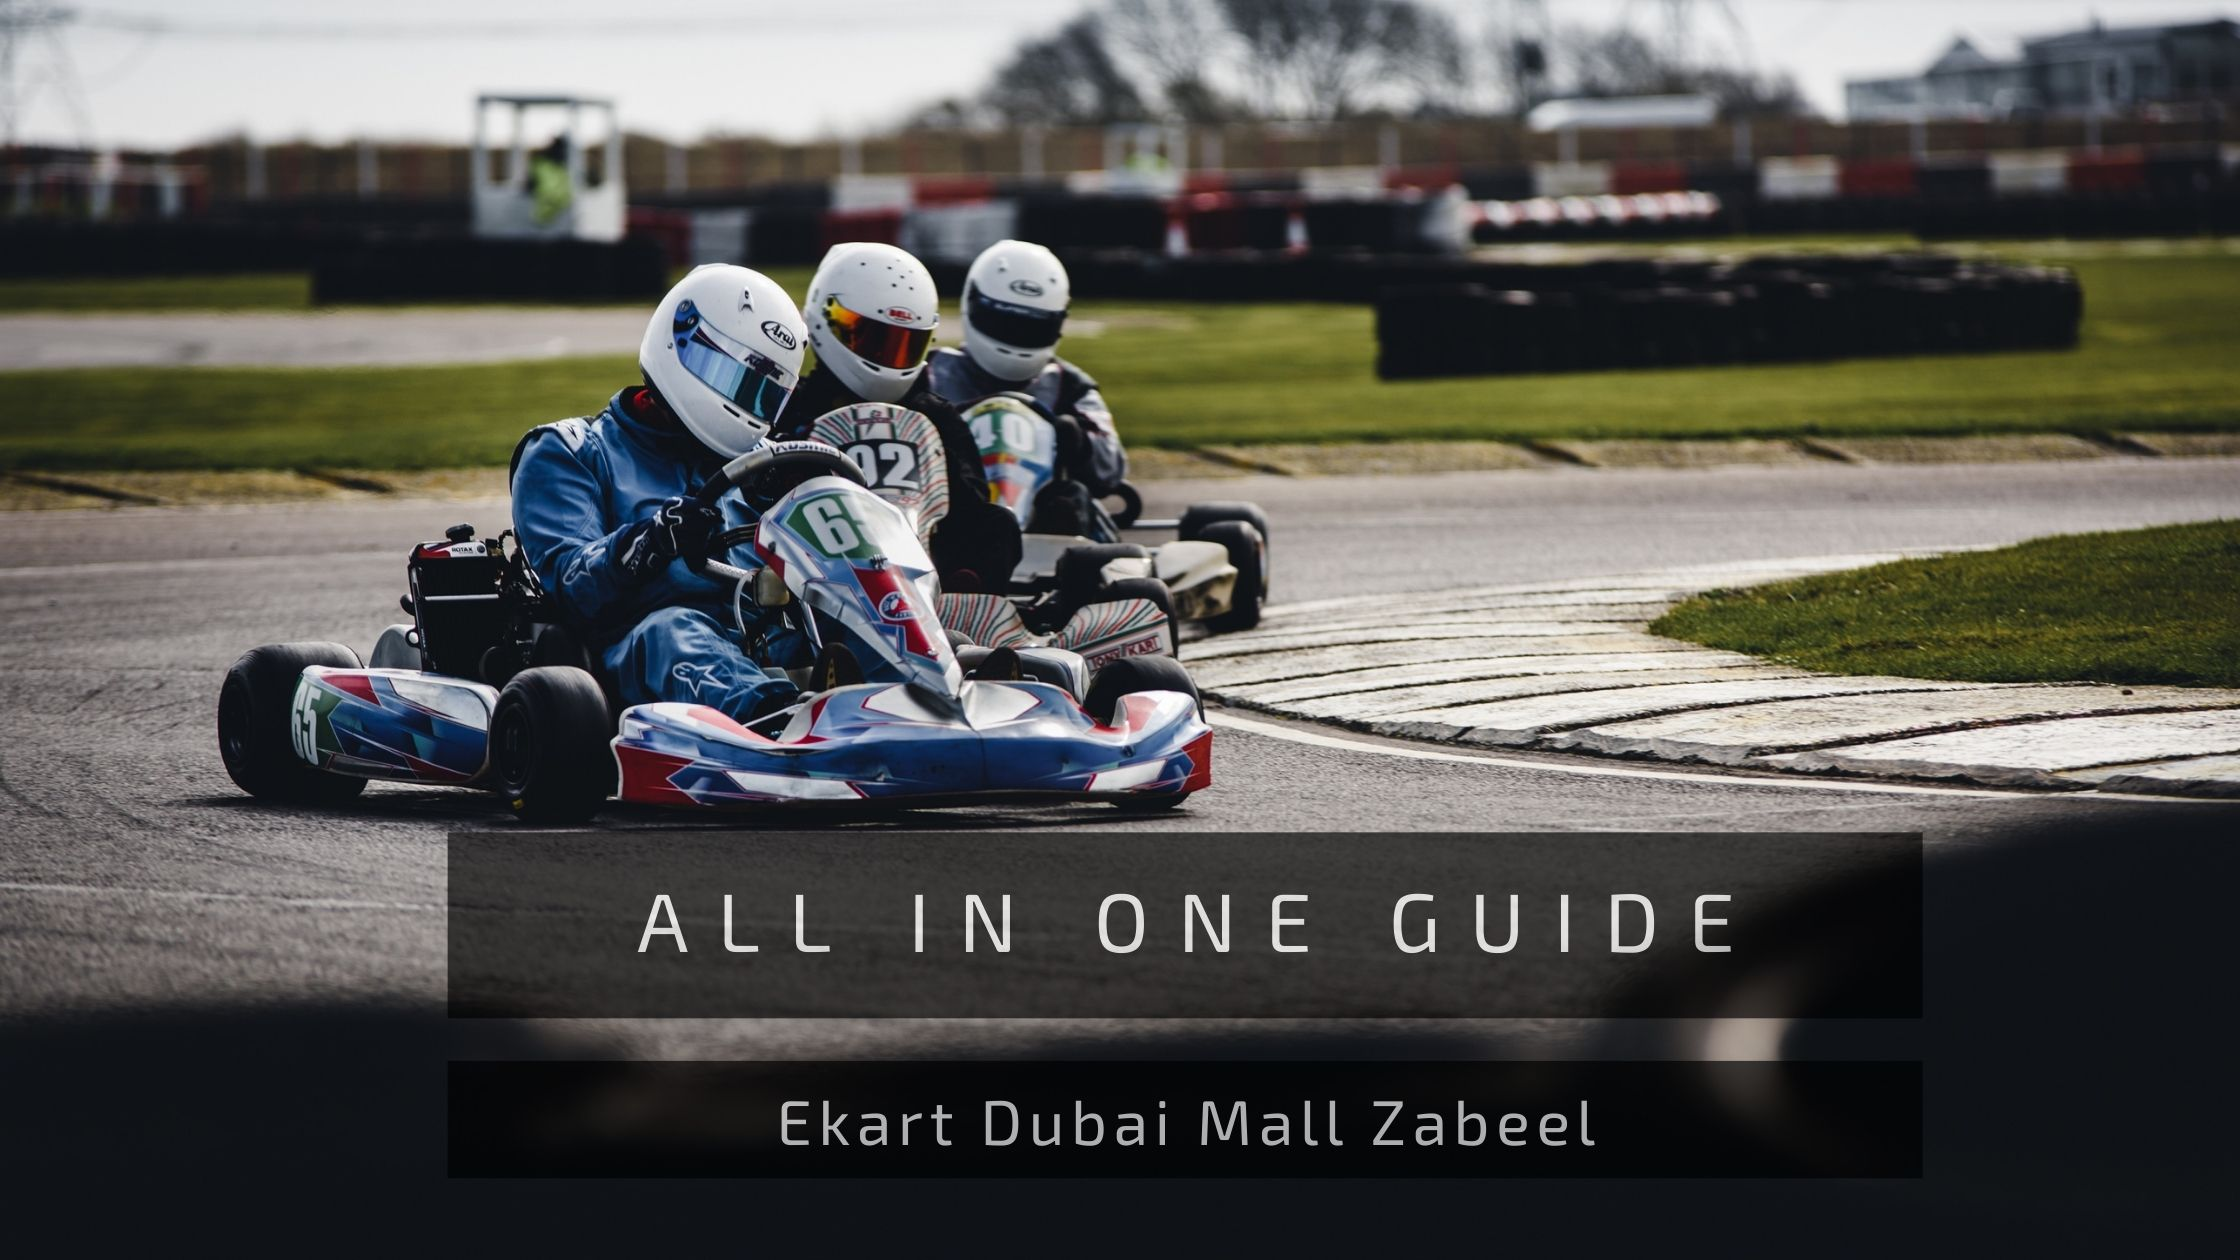 All you need to know about Ekart In Dubai Mall